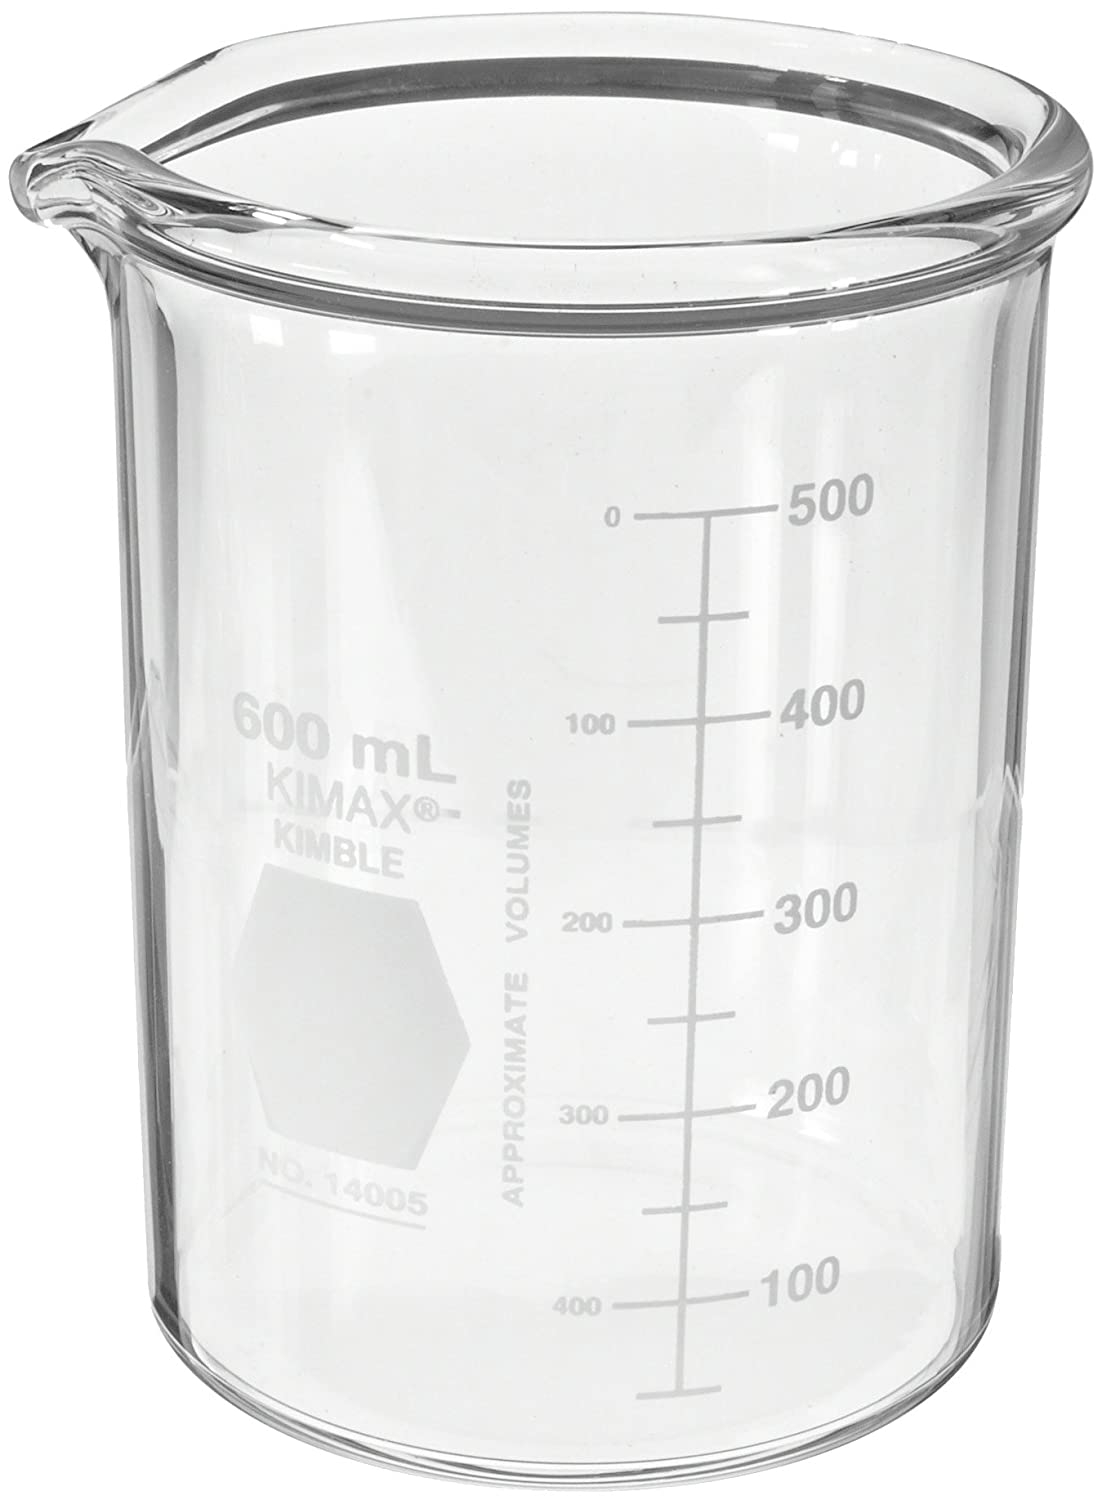 Kimax KG-33 borosilicate glass Griffin heavy-duty low-form beaker with double capacity scale Kimble Chase